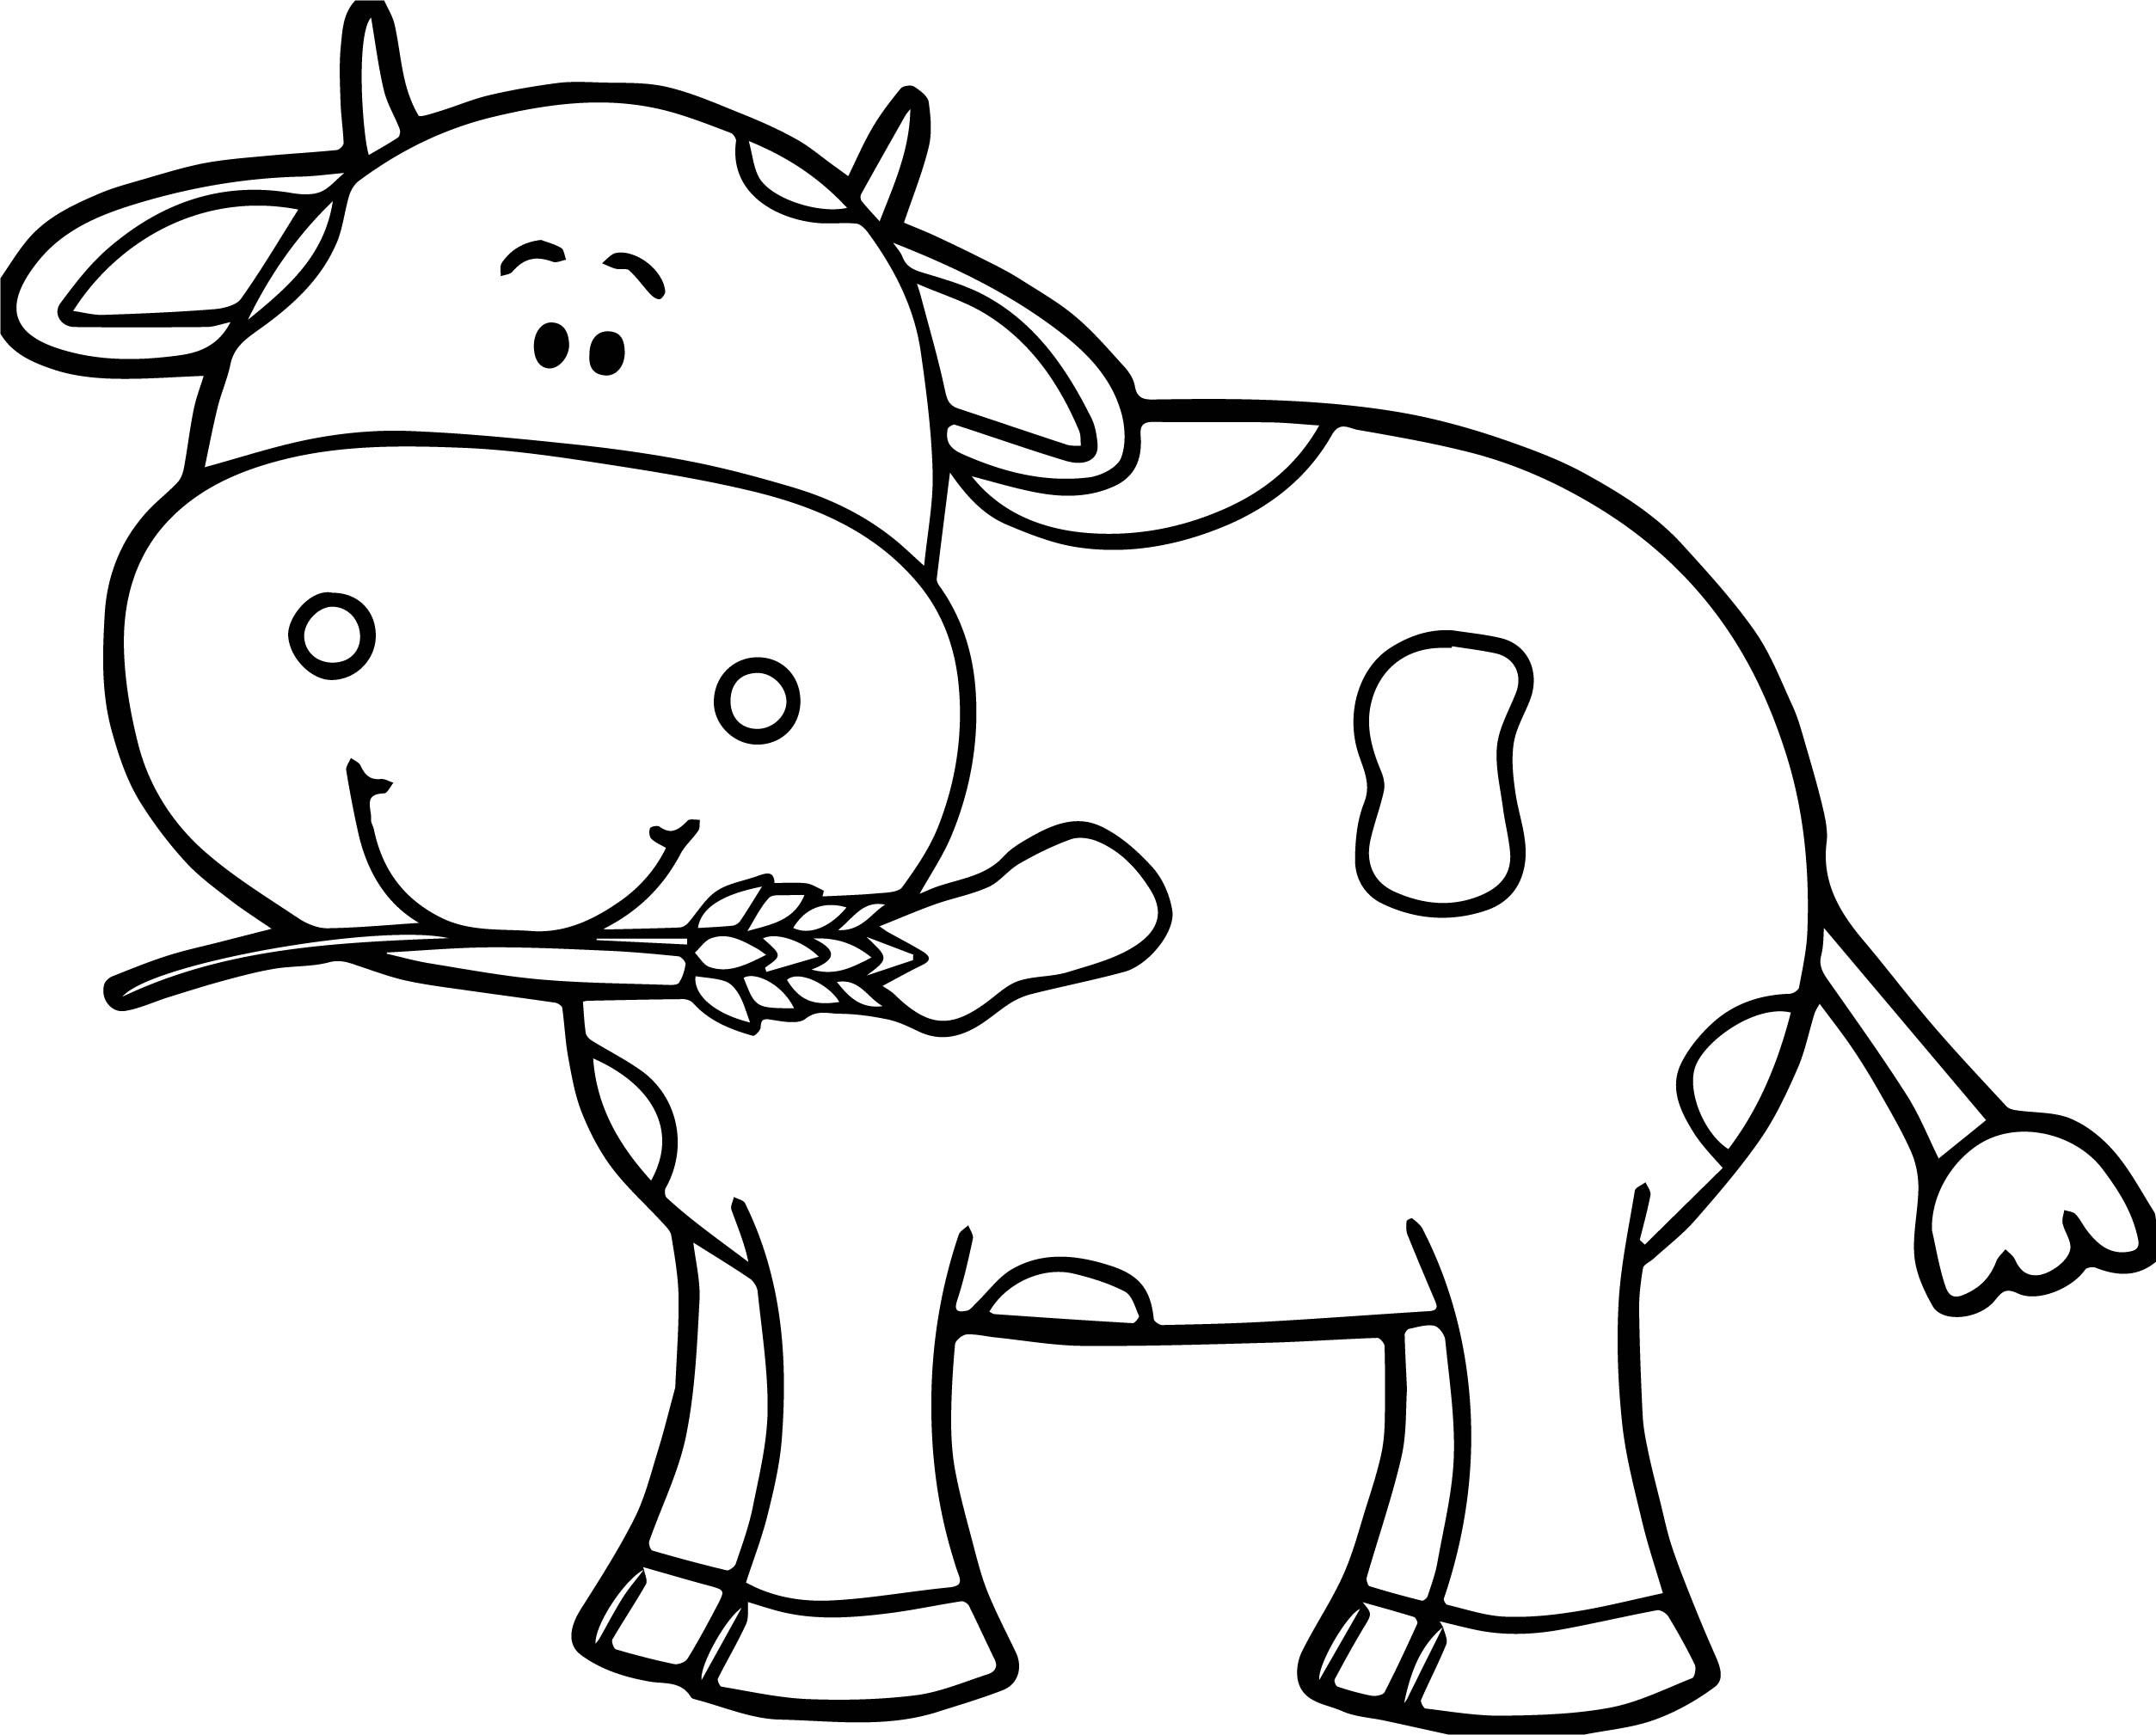 2507x2018 Suddenly Cartoon Cow Coloring Pages Freecolorngpages Co At Cow